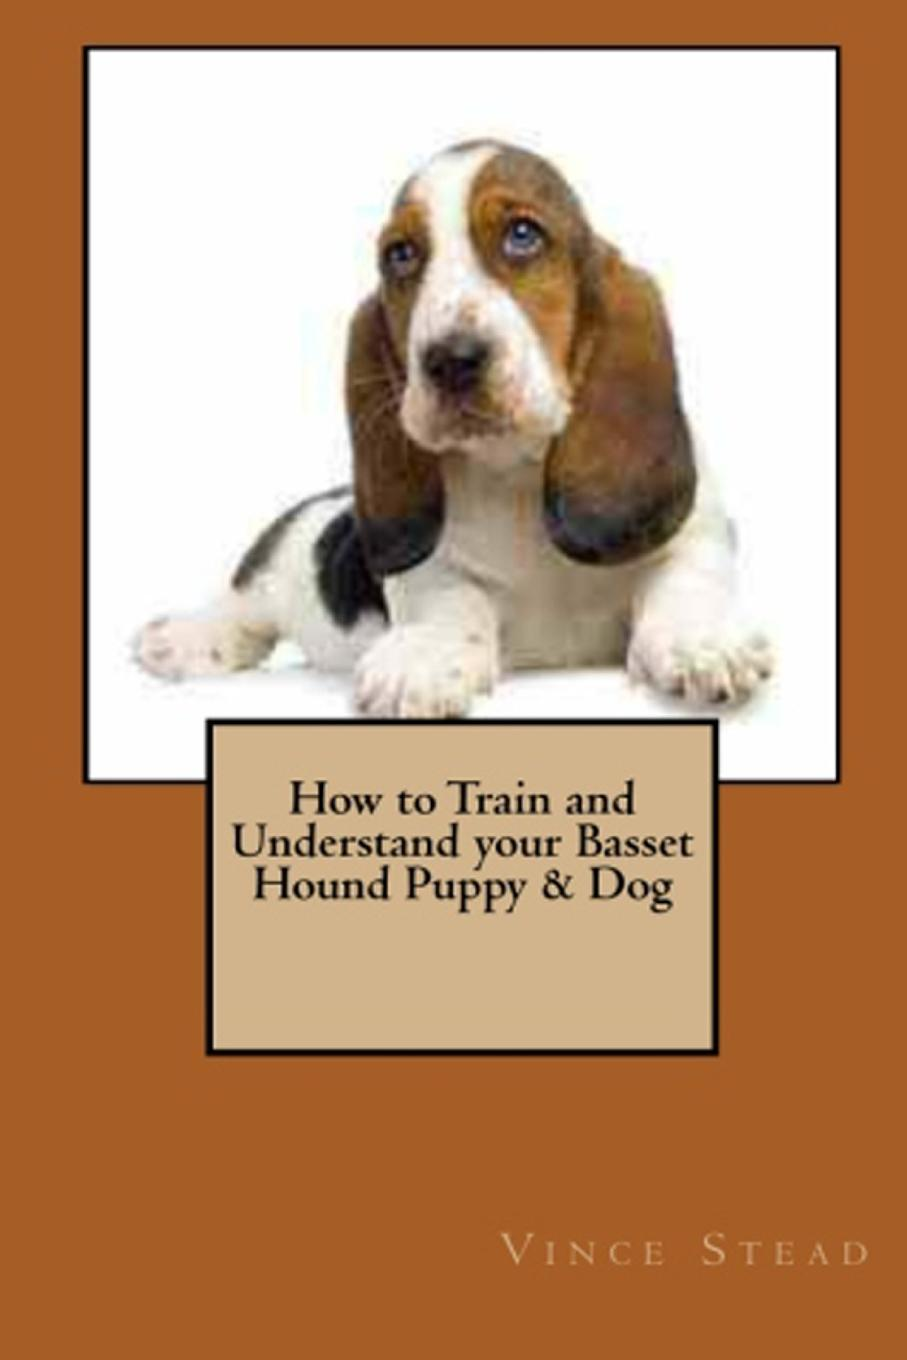 Vince Stead How to Train and Understand your Basset Hound Puppy . Dog vince stead how to train and understand your papillon puppy dog